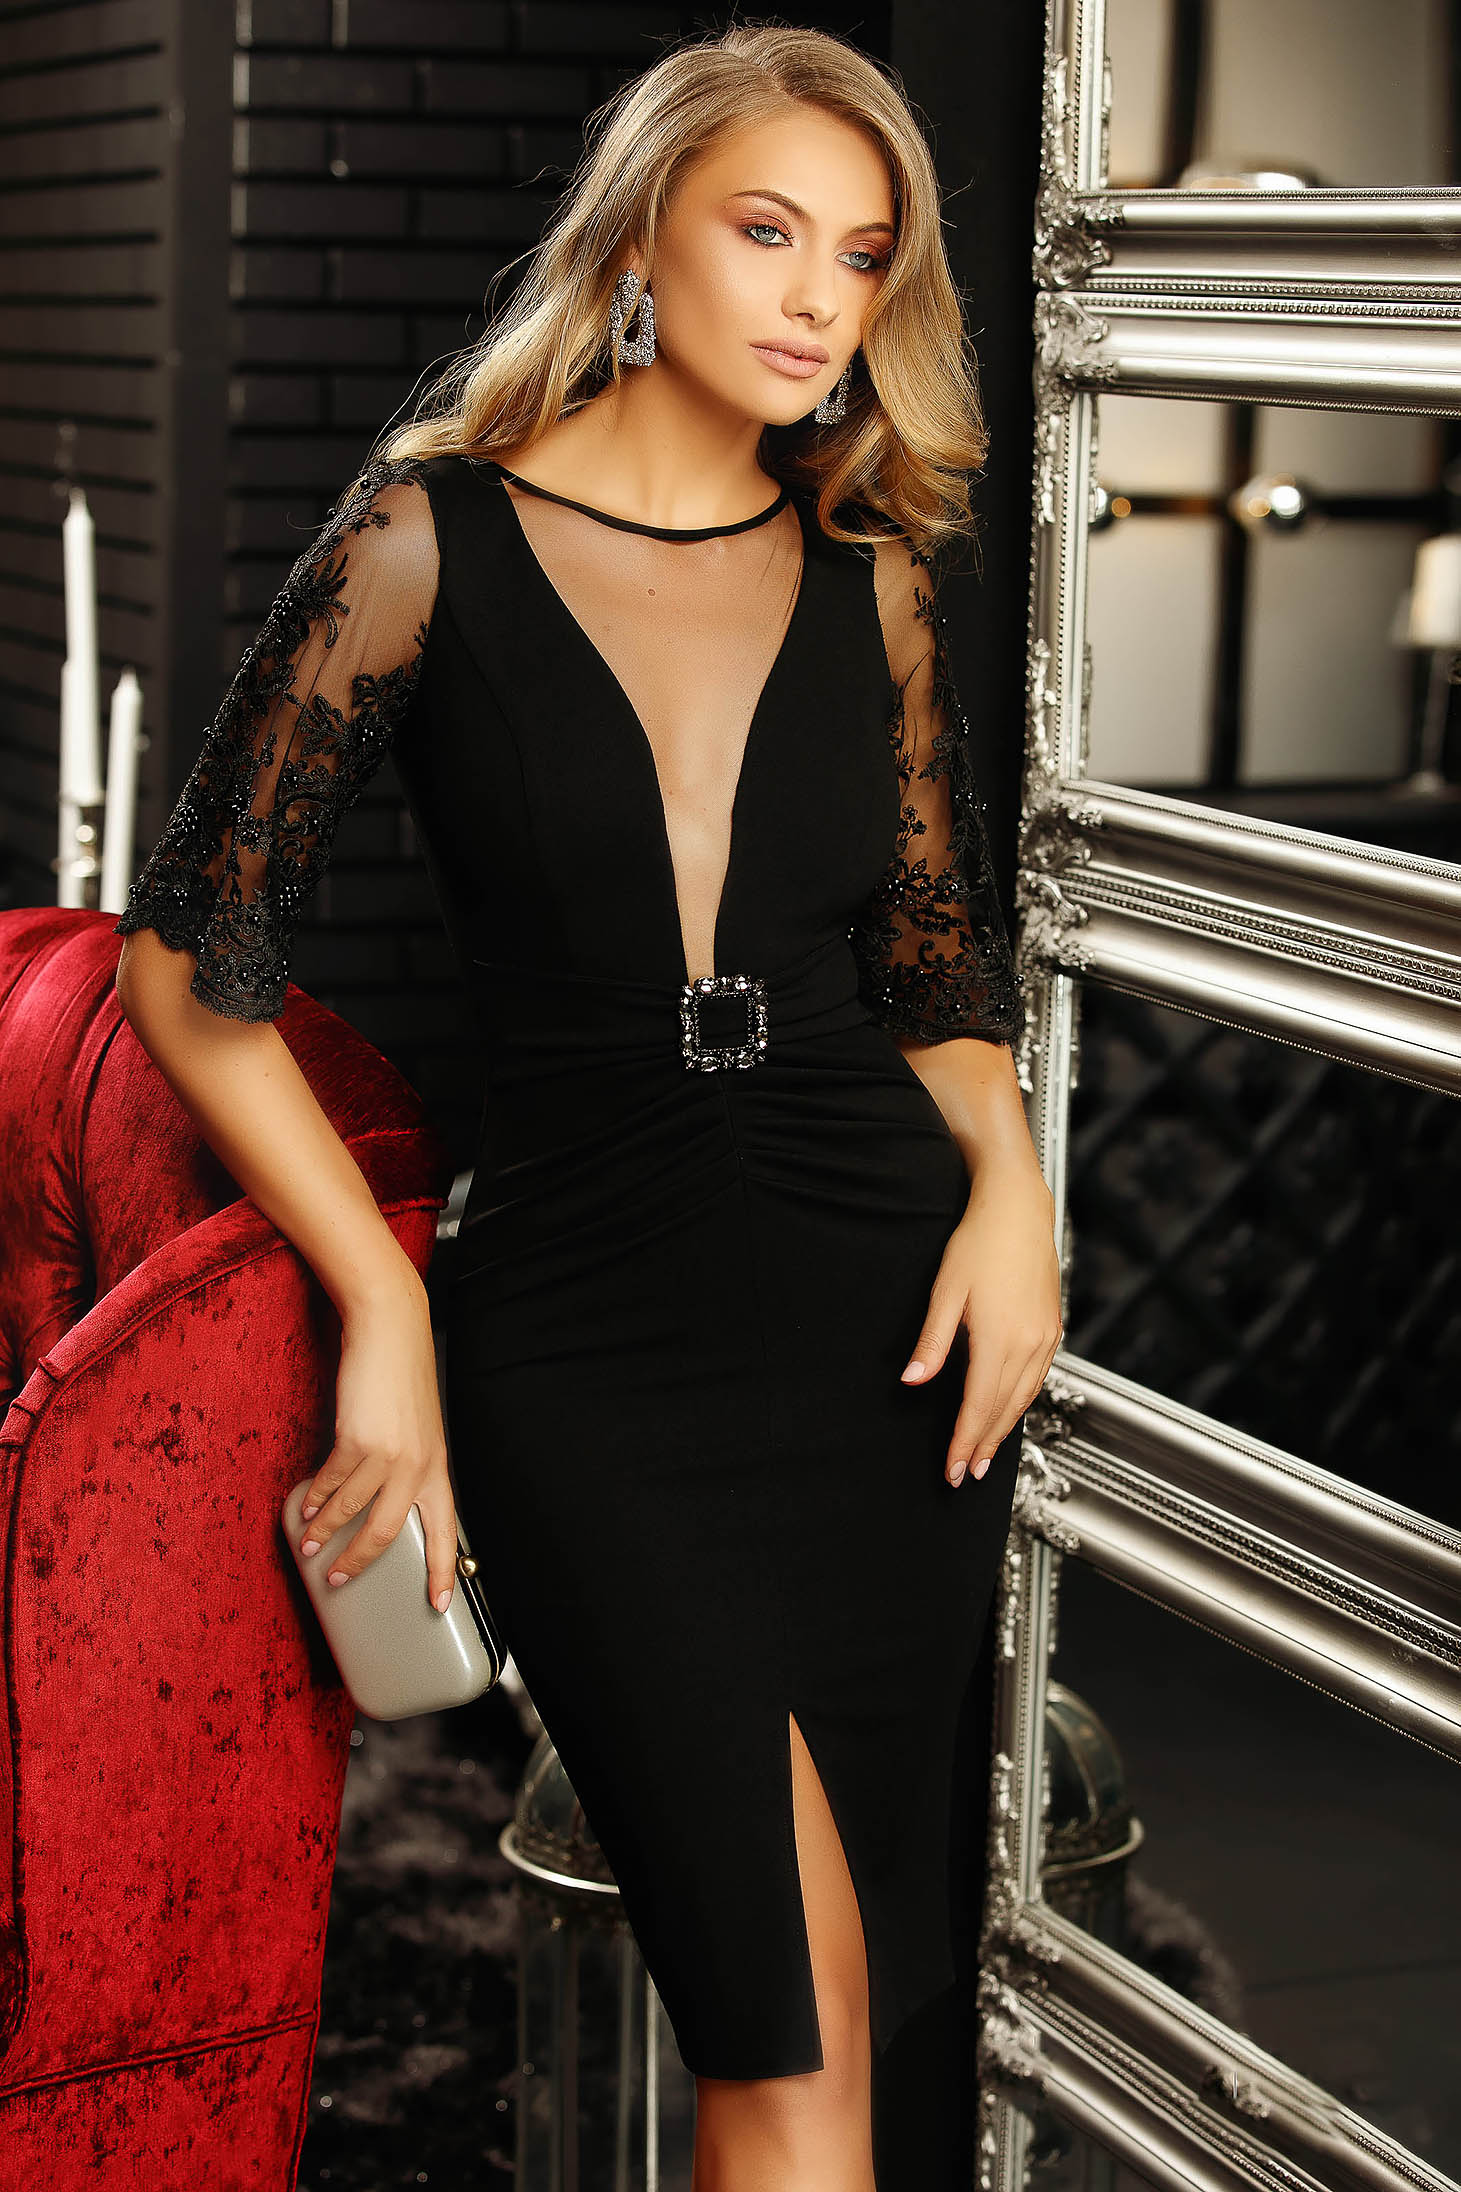 Black dress occasional with deep cleavage with 3/4 sleeves lace and crystal embellished details buckle accessory